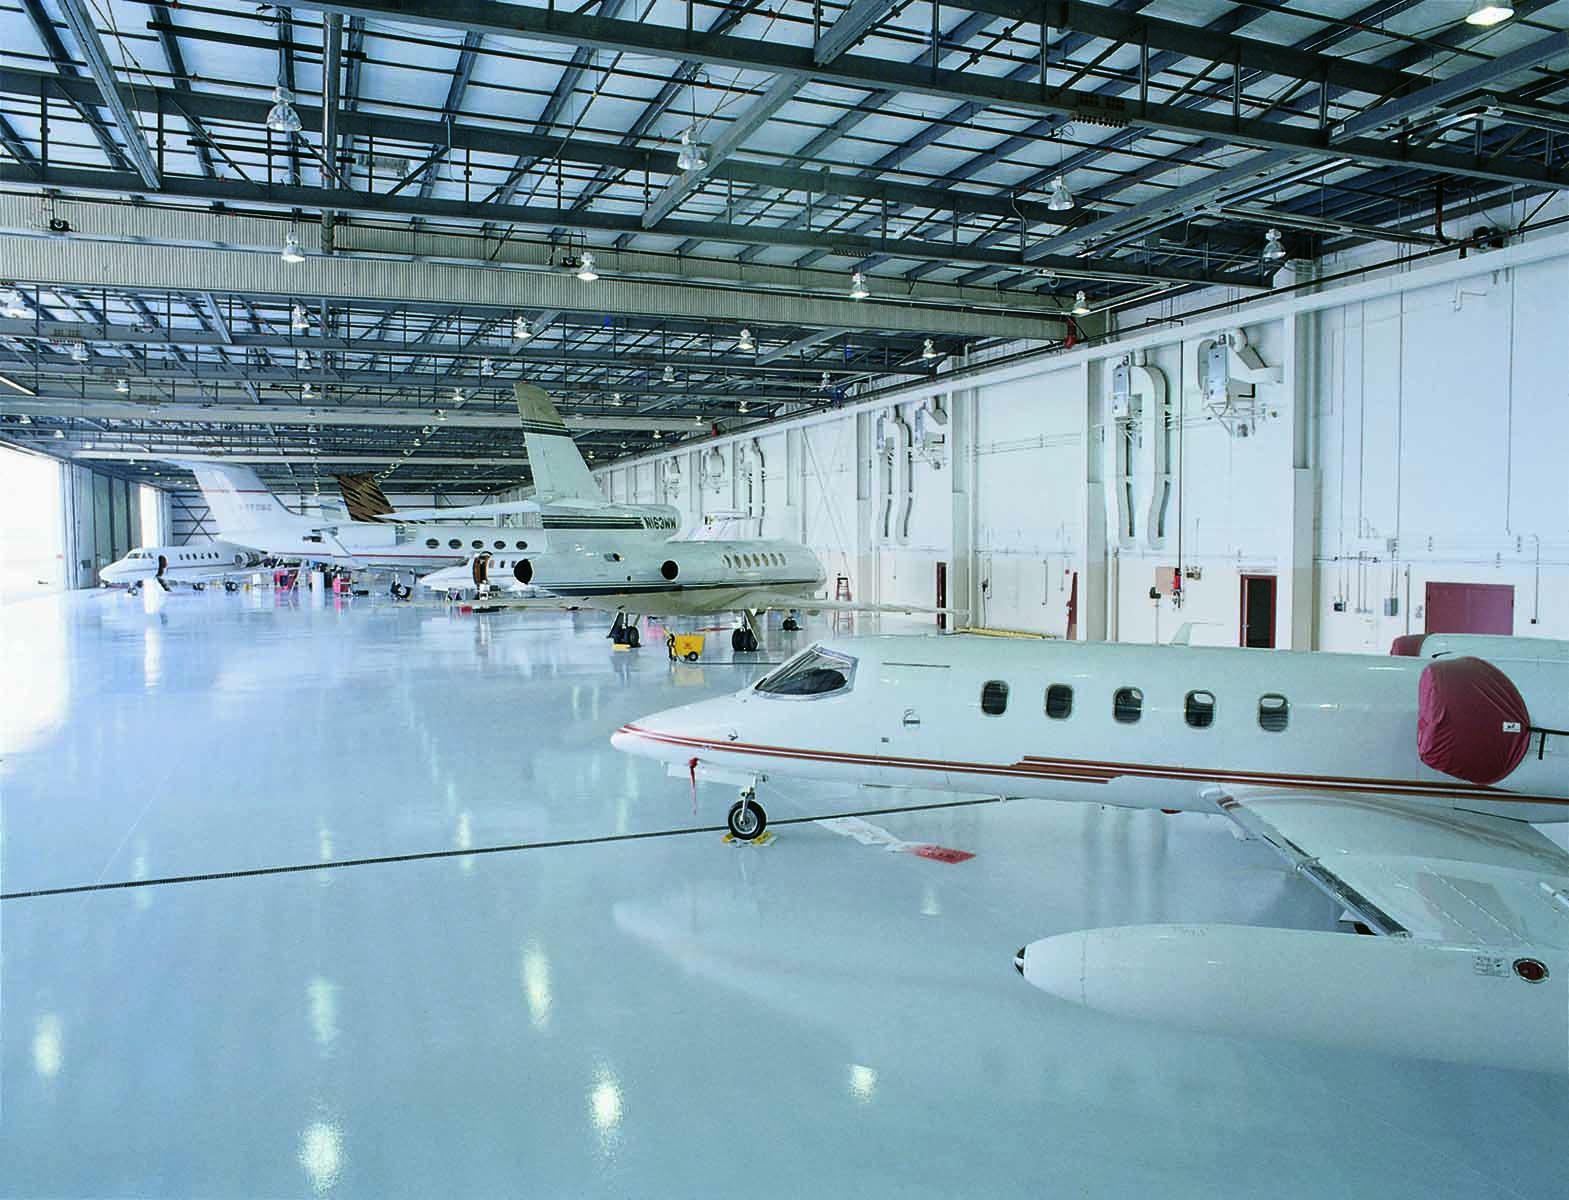 Inside HPN hangar, corporate jets.